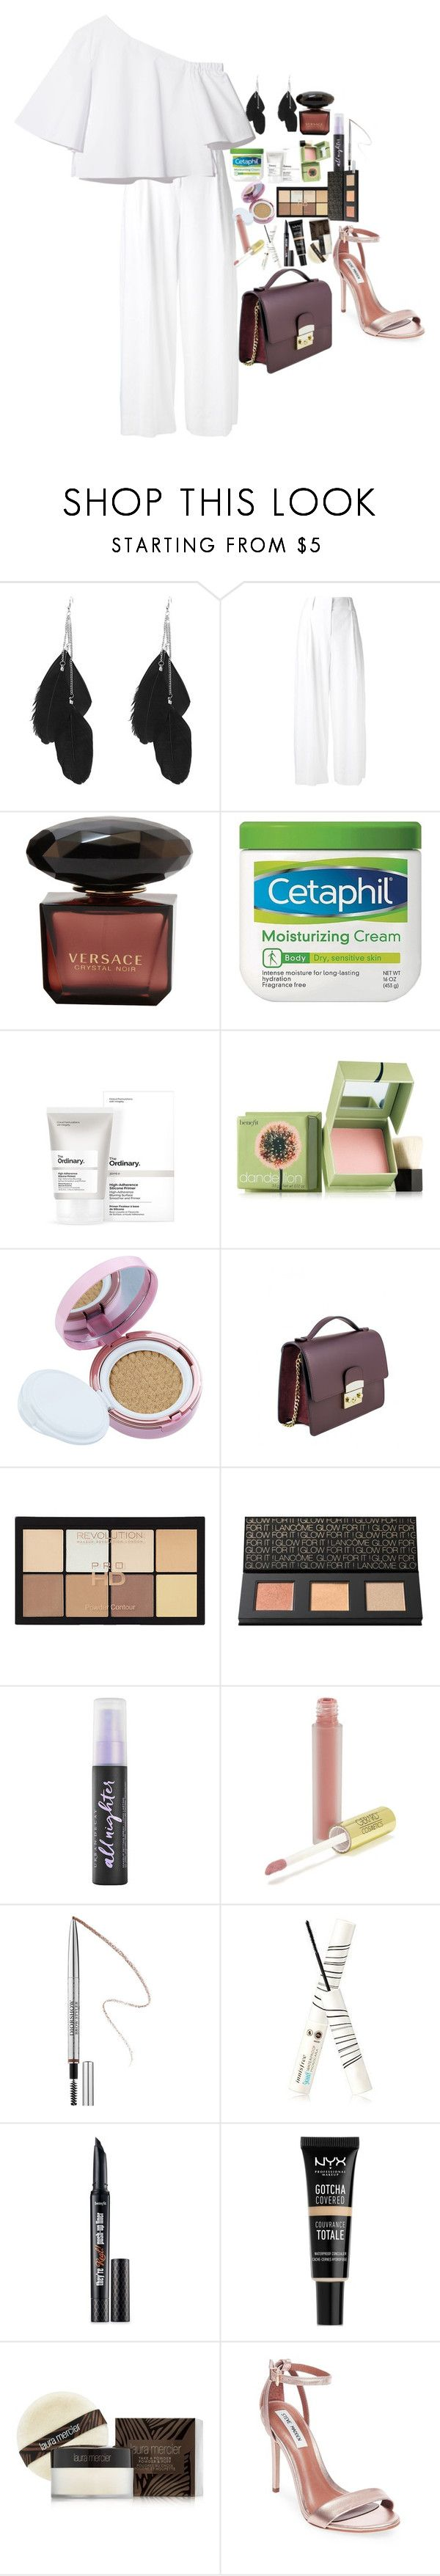 """""""Untitled #4628"""" by veronicaptr ❤ liked on Polyvore featuring Diane Von Furstenberg, Cetaphil, The Ordinary, Benefit, Laneige, ULTA, Lancôme, Urban Decay, Gerard Cosmetics and Sephora Collection"""